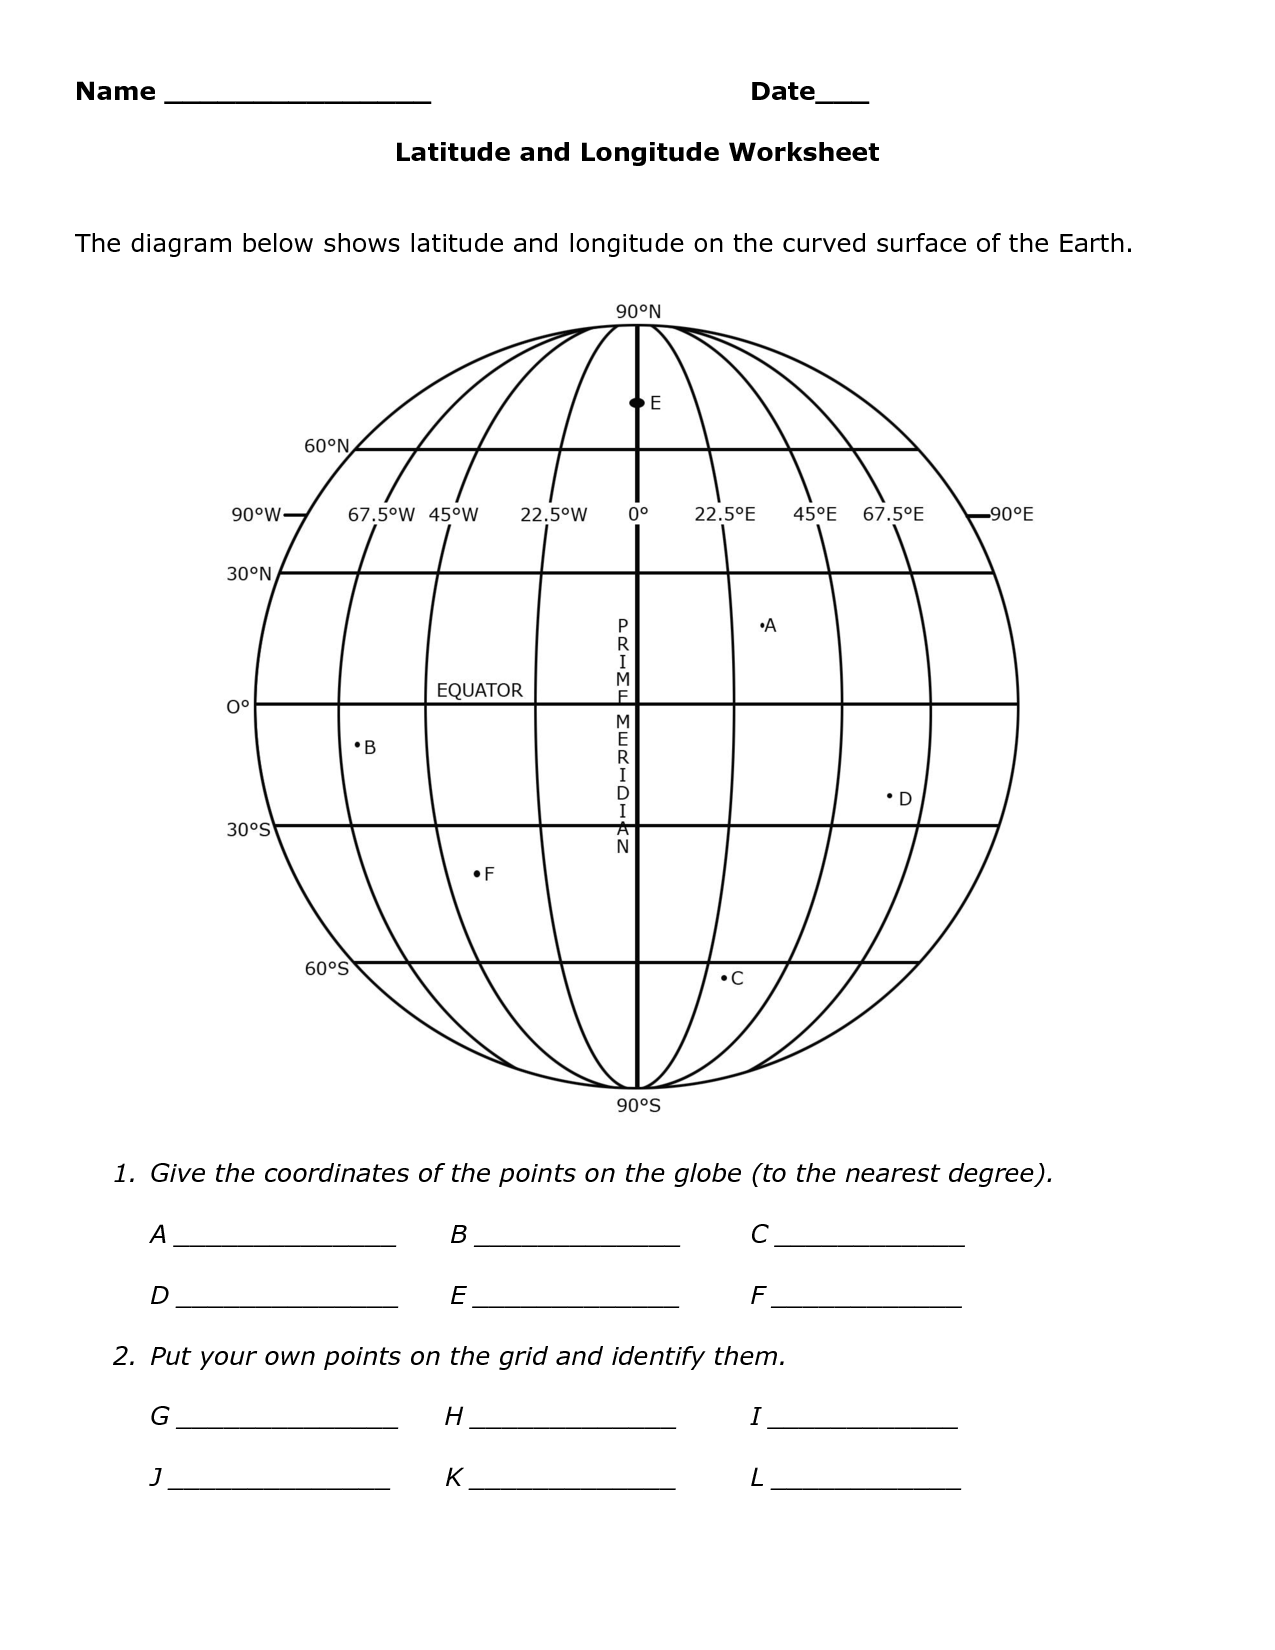 Worksheets Free Printable Latitude And Longitude Worksheets latitude and longitude worksheets school social studies pinterest geography